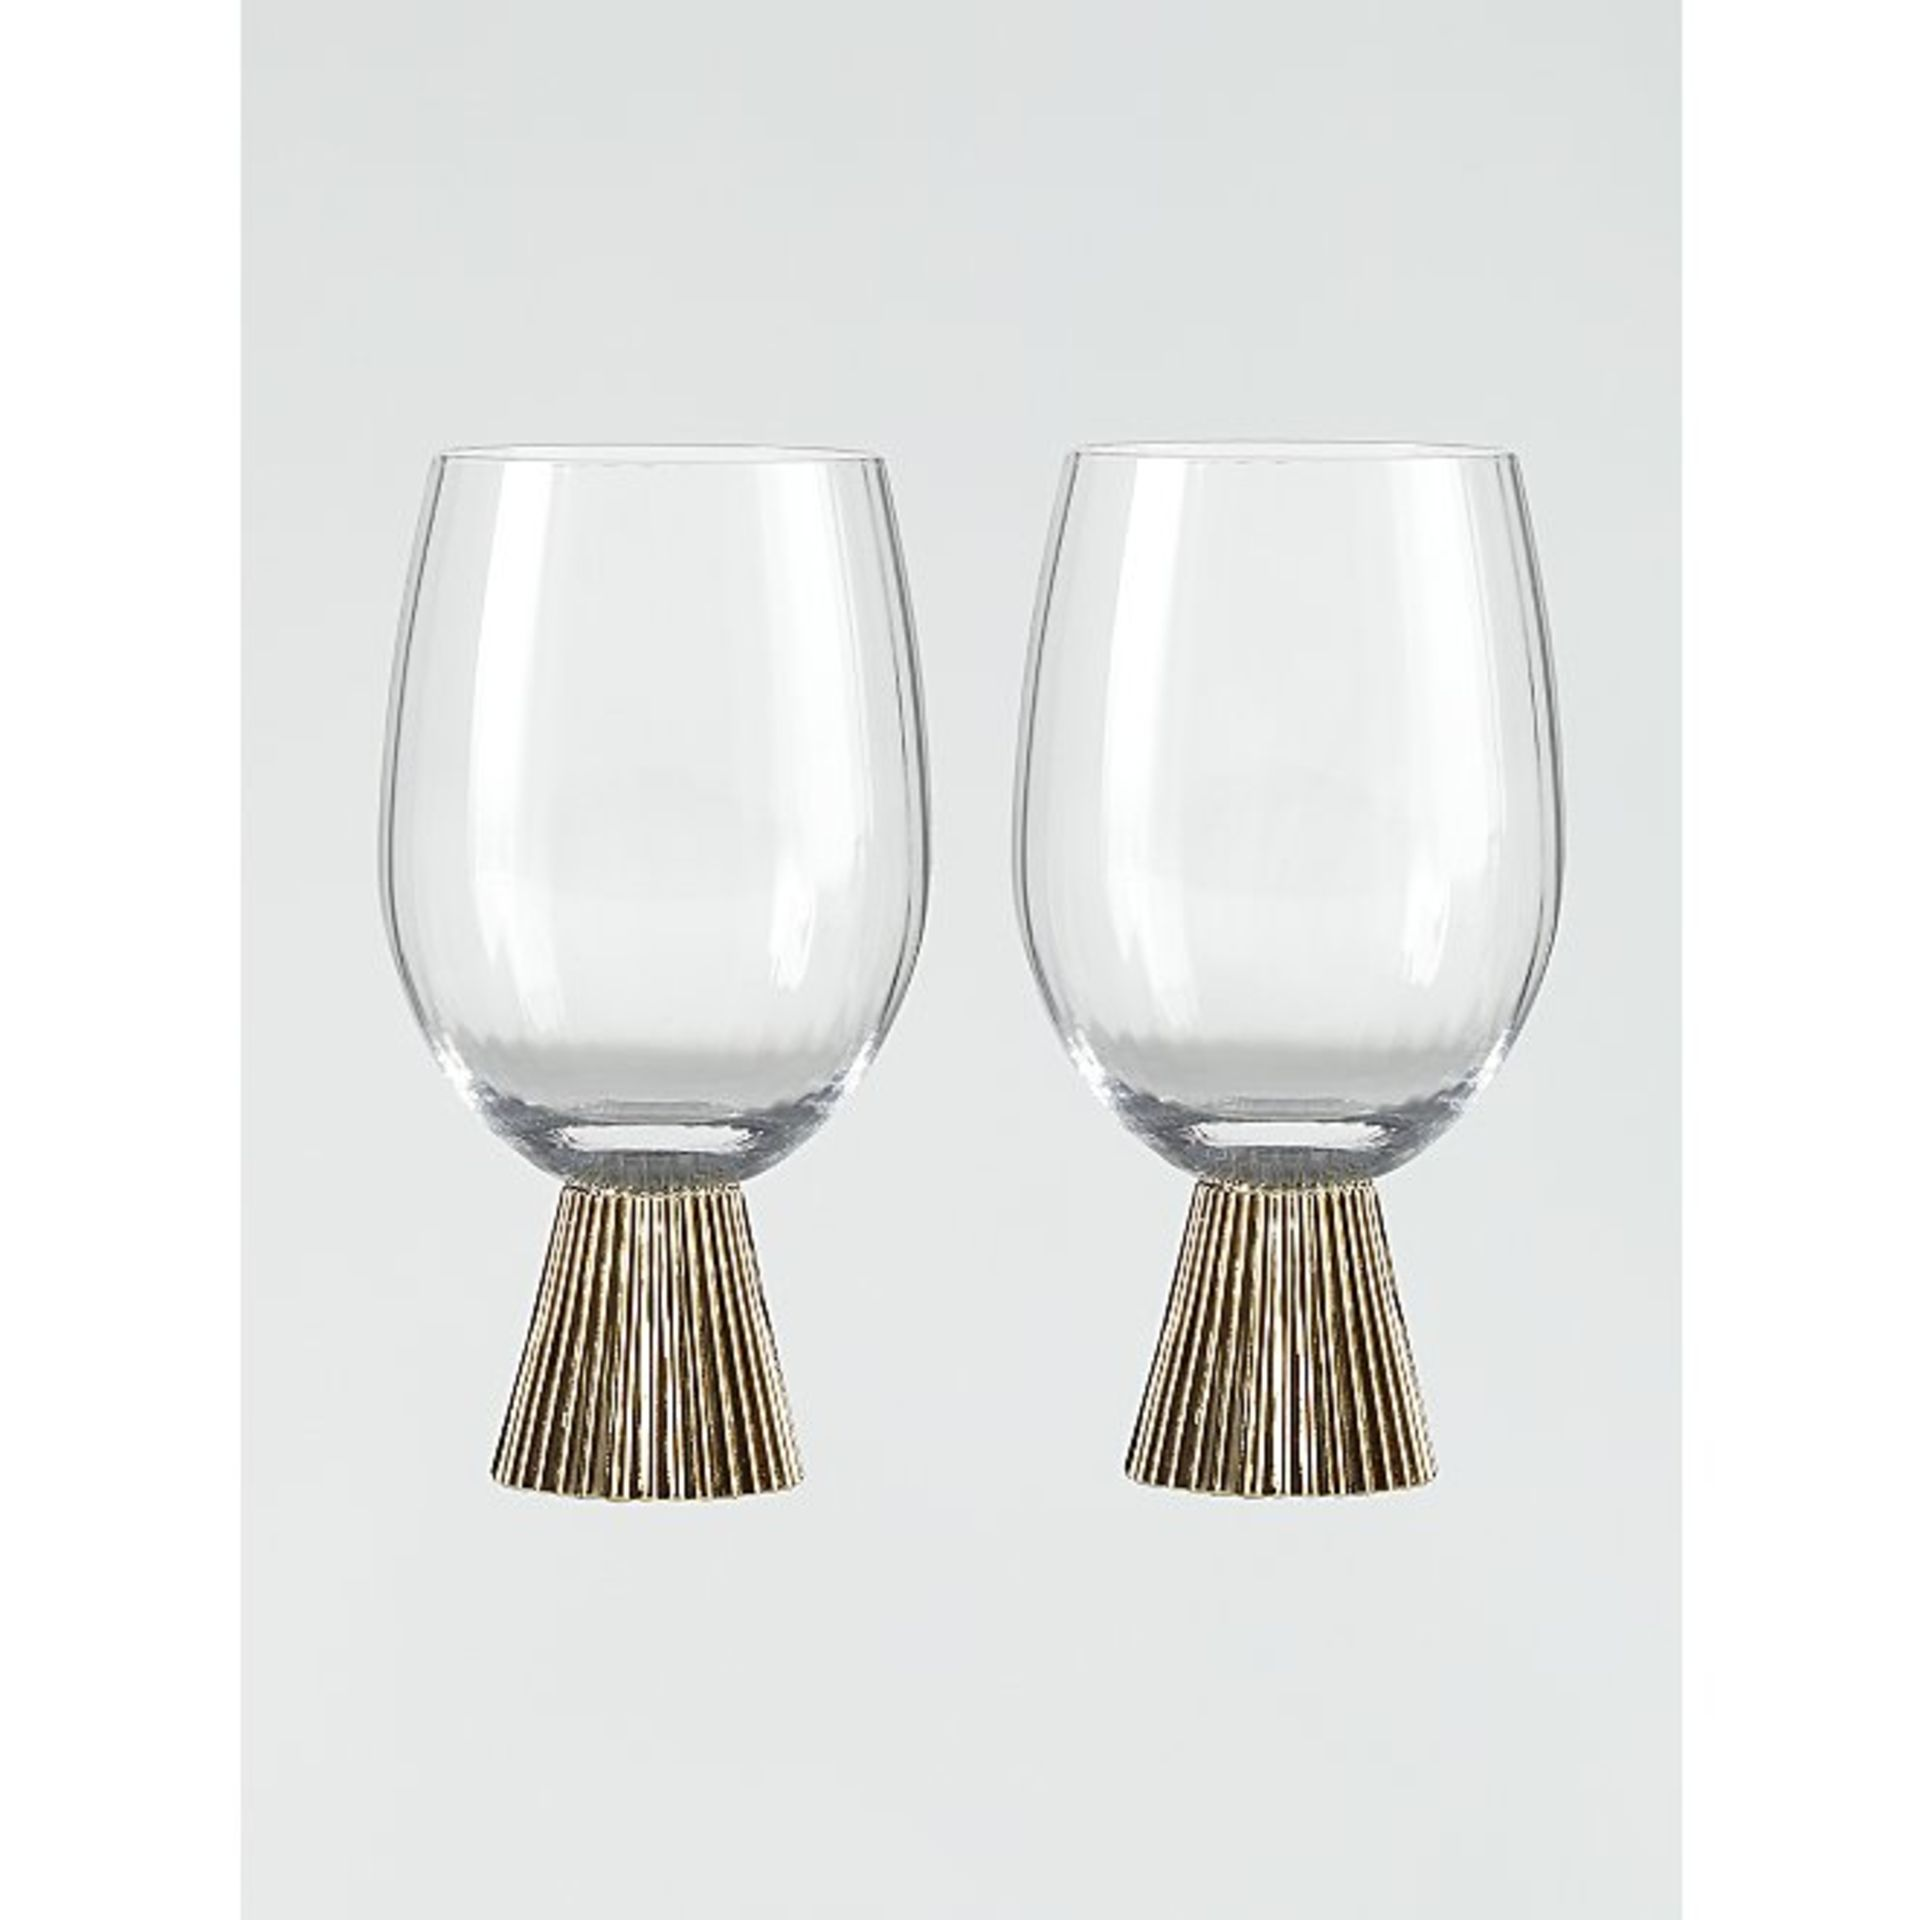 Glass Lot – Approx. 65x Items. To Include 16x Wine Glasses. 3x Large Gin Glasses. 12x Soda Glasses. - Image 2 of 21